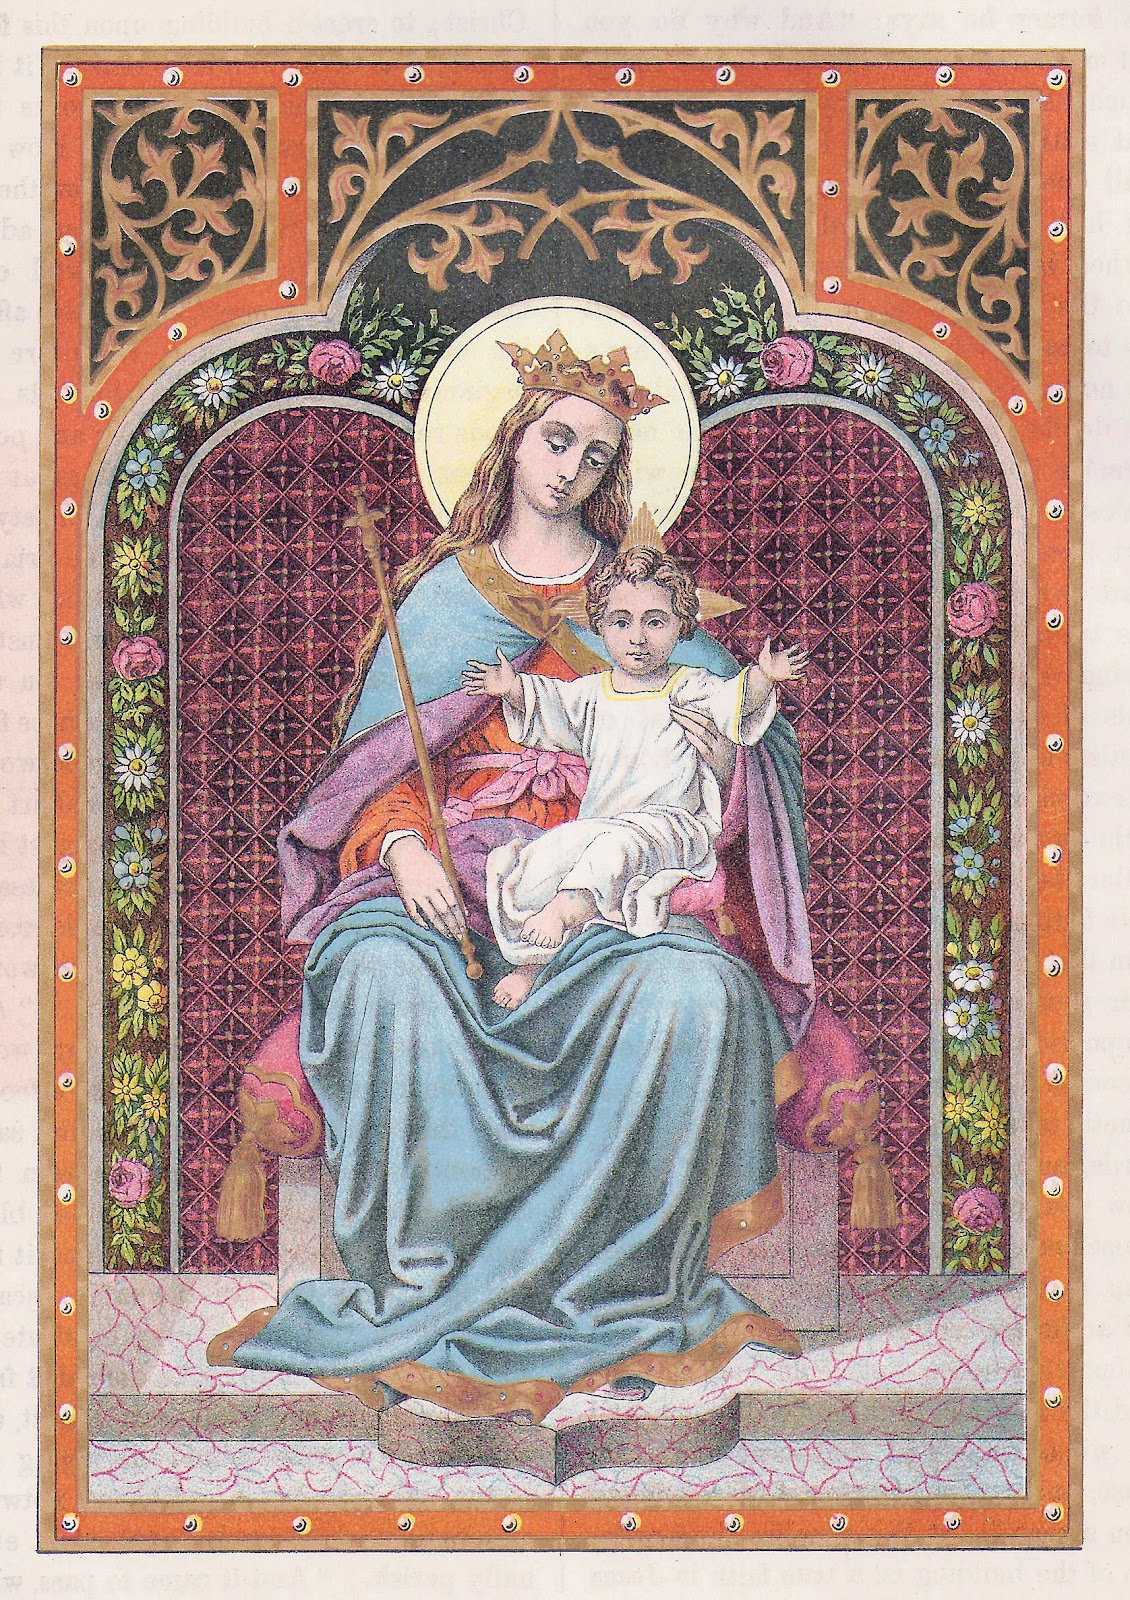 Religious Clip Art 2 Vintage Illustrations from Catholic Bible Mary 1130x1600